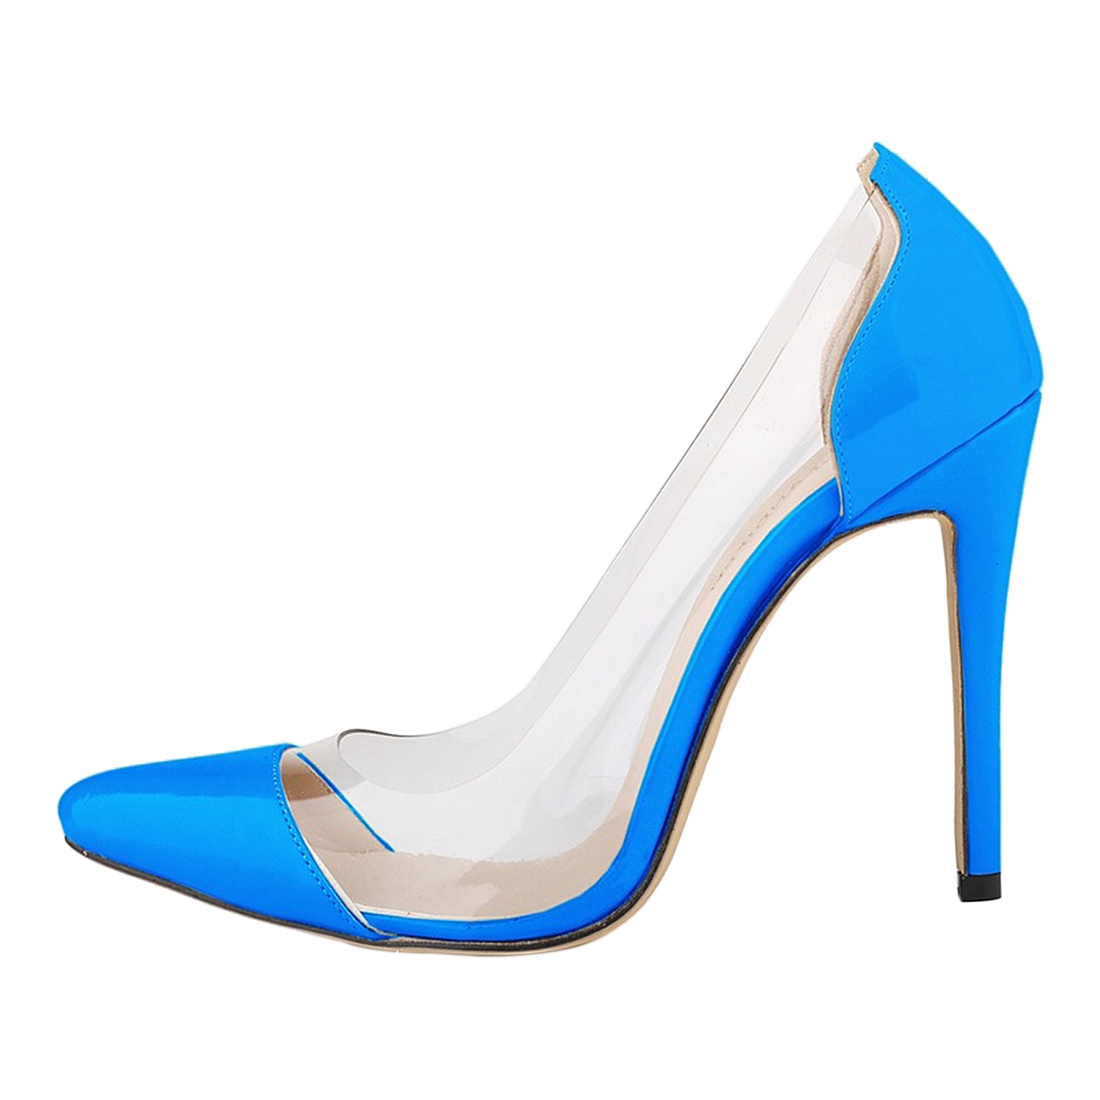 LOSLANDIFEN women new high-heeled shoes high quality handmade sandals / leather shoes Sky blue the new type of diamond mother sandals lady leather fish mouth flowers with leather high heeled shoes slippers women shoes